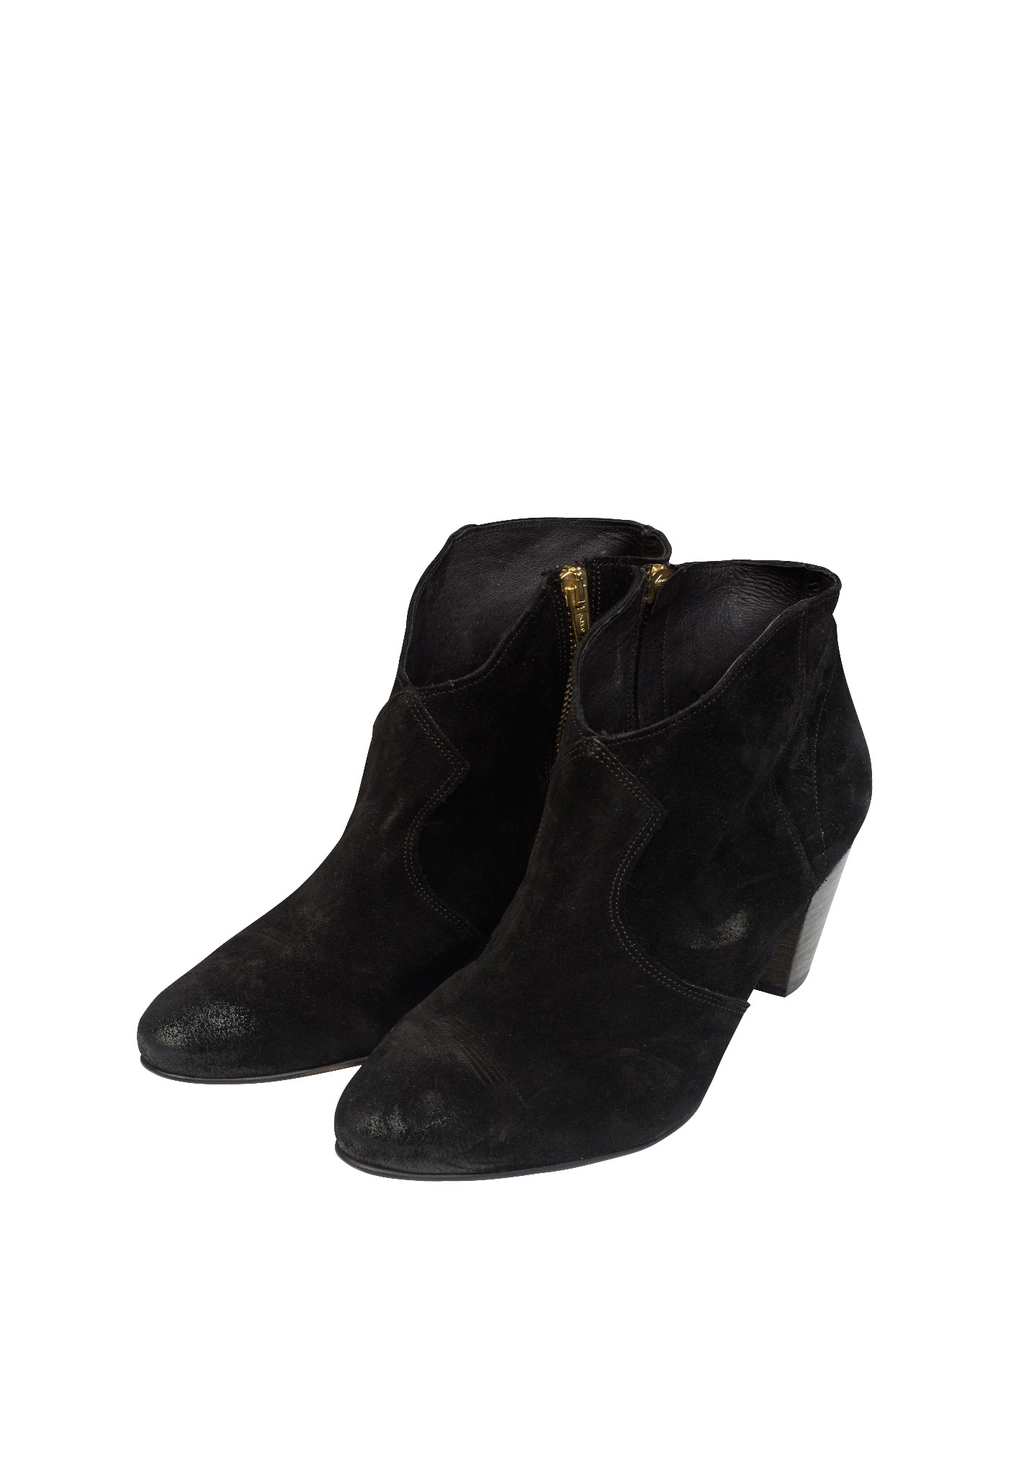 Thornton Ankle Boots - predominant colour: black; occasions: casual, creative work; material: suede; heel height: mid; heel: block; toe: round toe; boot length: ankle boot; style: standard; finish: plain; pattern: plain; season: s/s 2016; wardrobe: basic